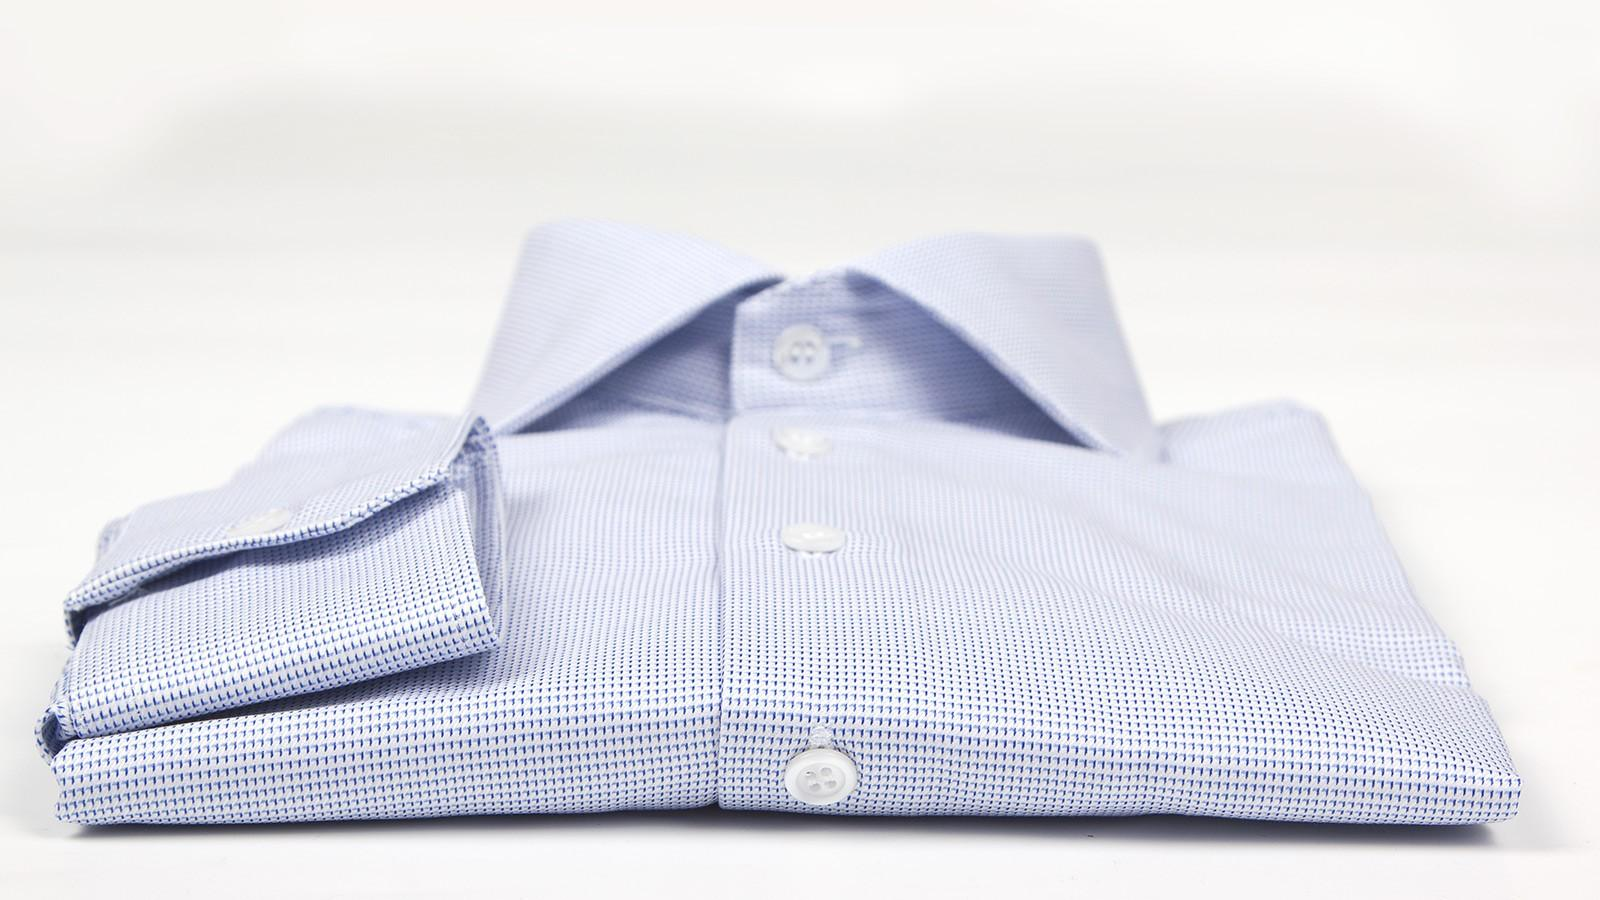 Micropatterned White & Blue Two-ply Cotton Shirt - slider image 1